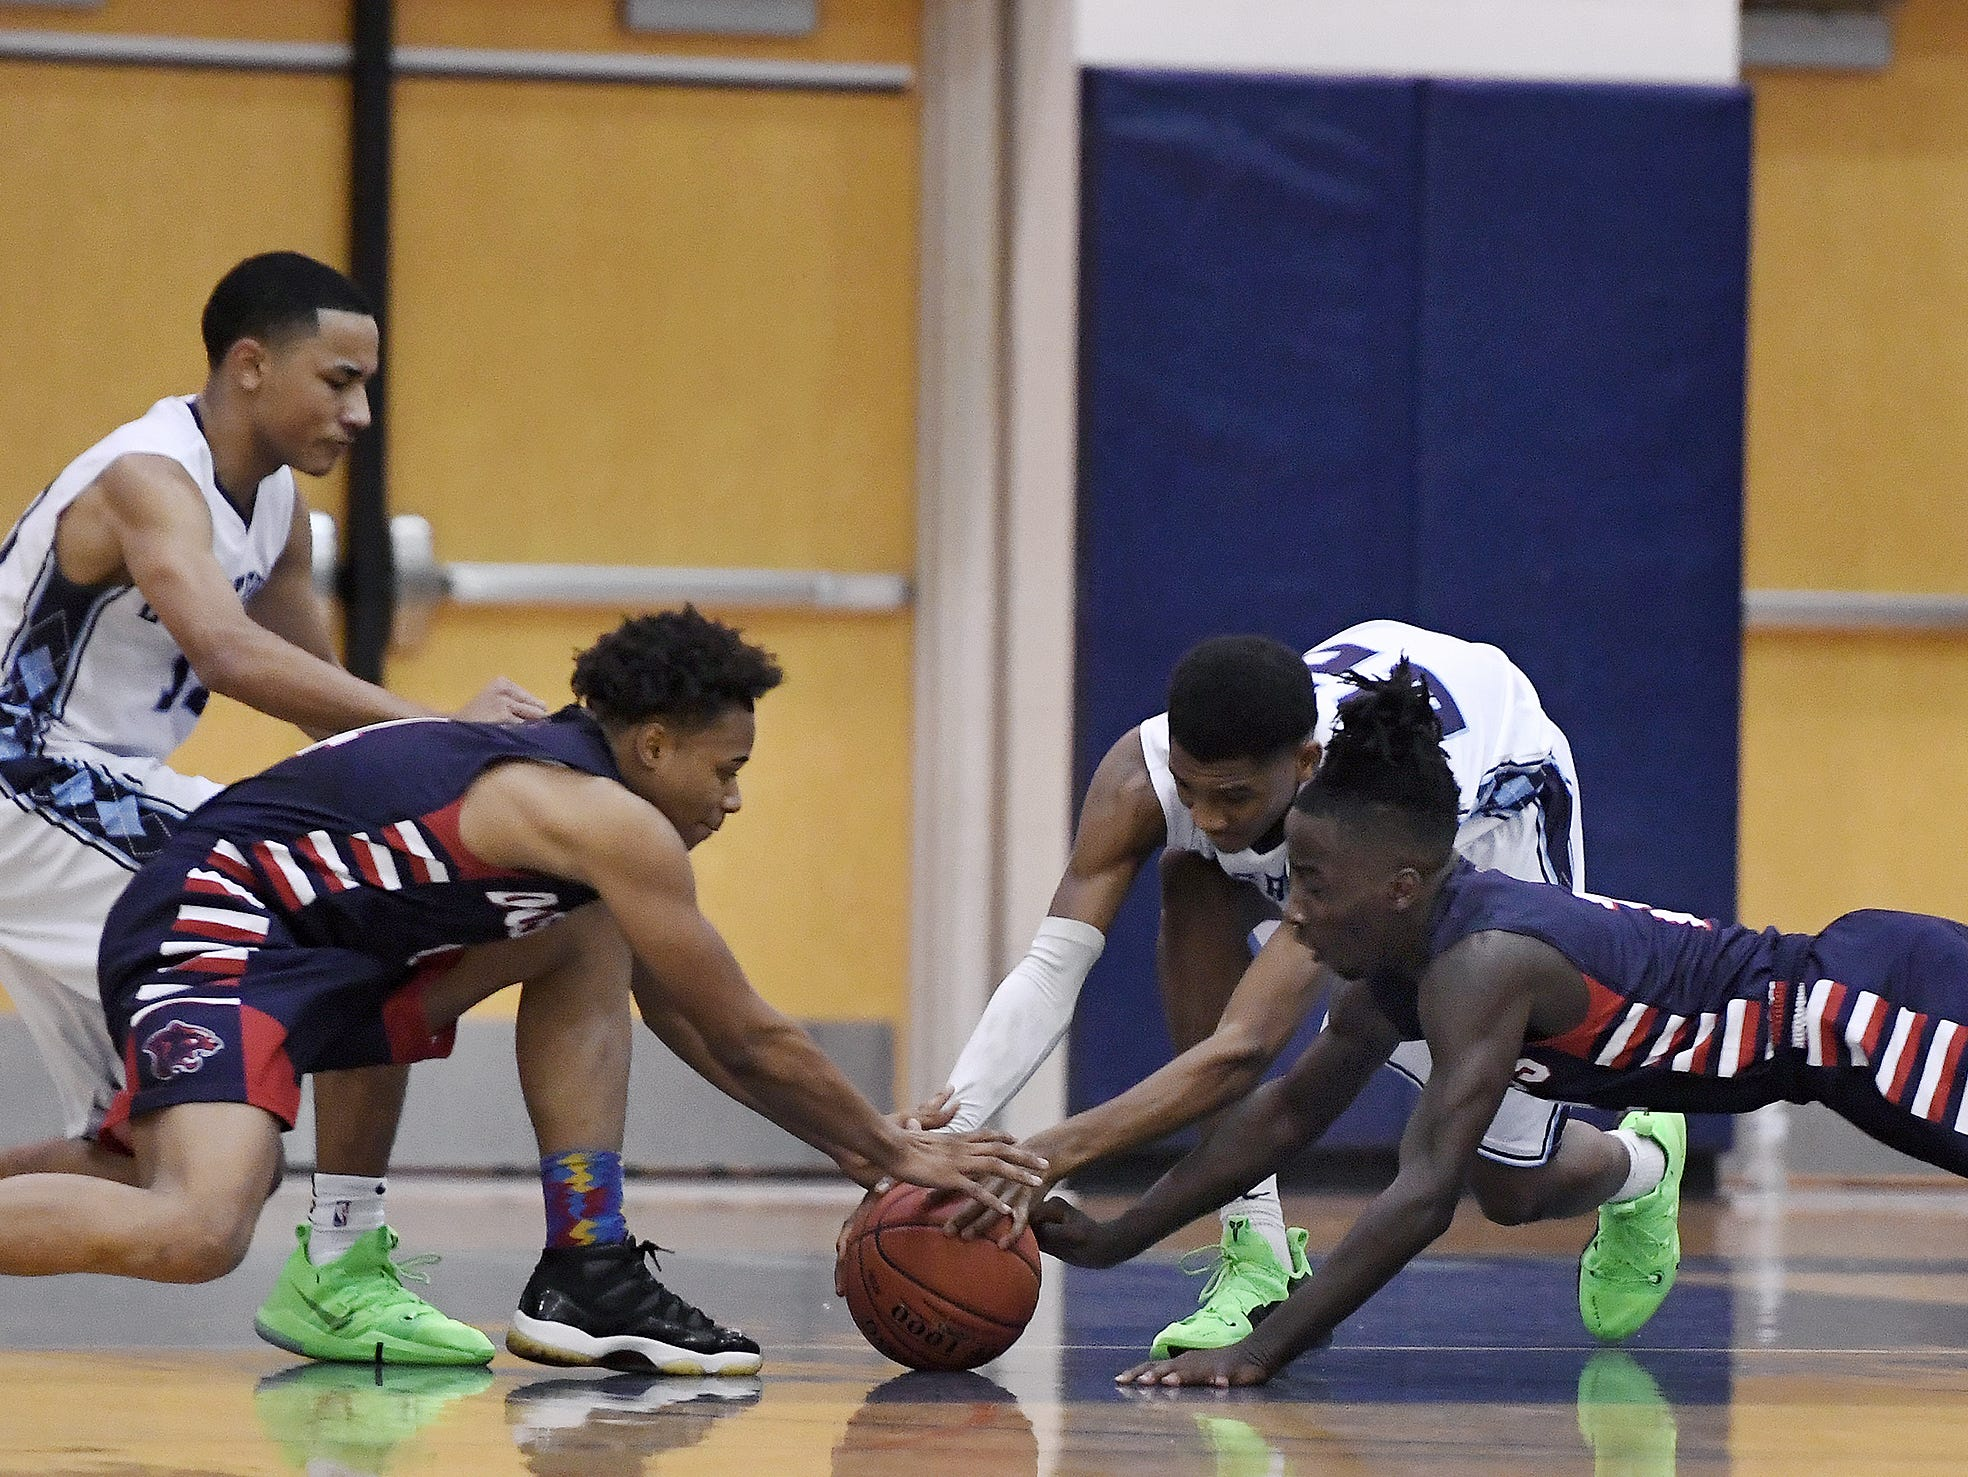 NE Douglass' Trevion Miller, left, and Jiahmere Mitchell dive for a loose ball against Eastridge's Jahmel Demery during the finals of the Al Masino Memorial Tip-Off Tournament.